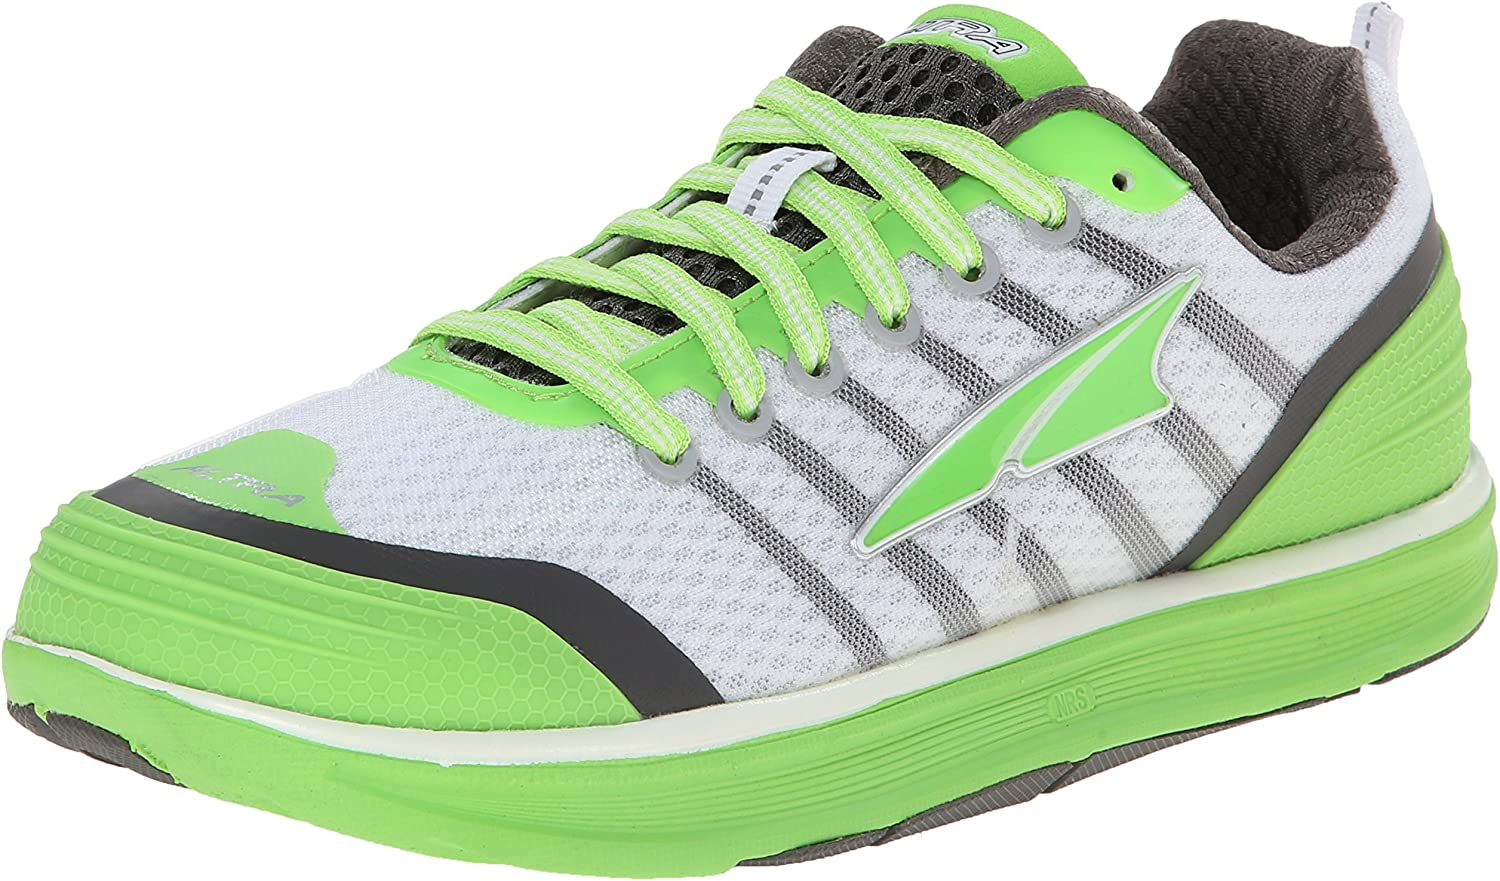 Altra Women's Intuition 2 Running shoes,White Green,6.5 M US